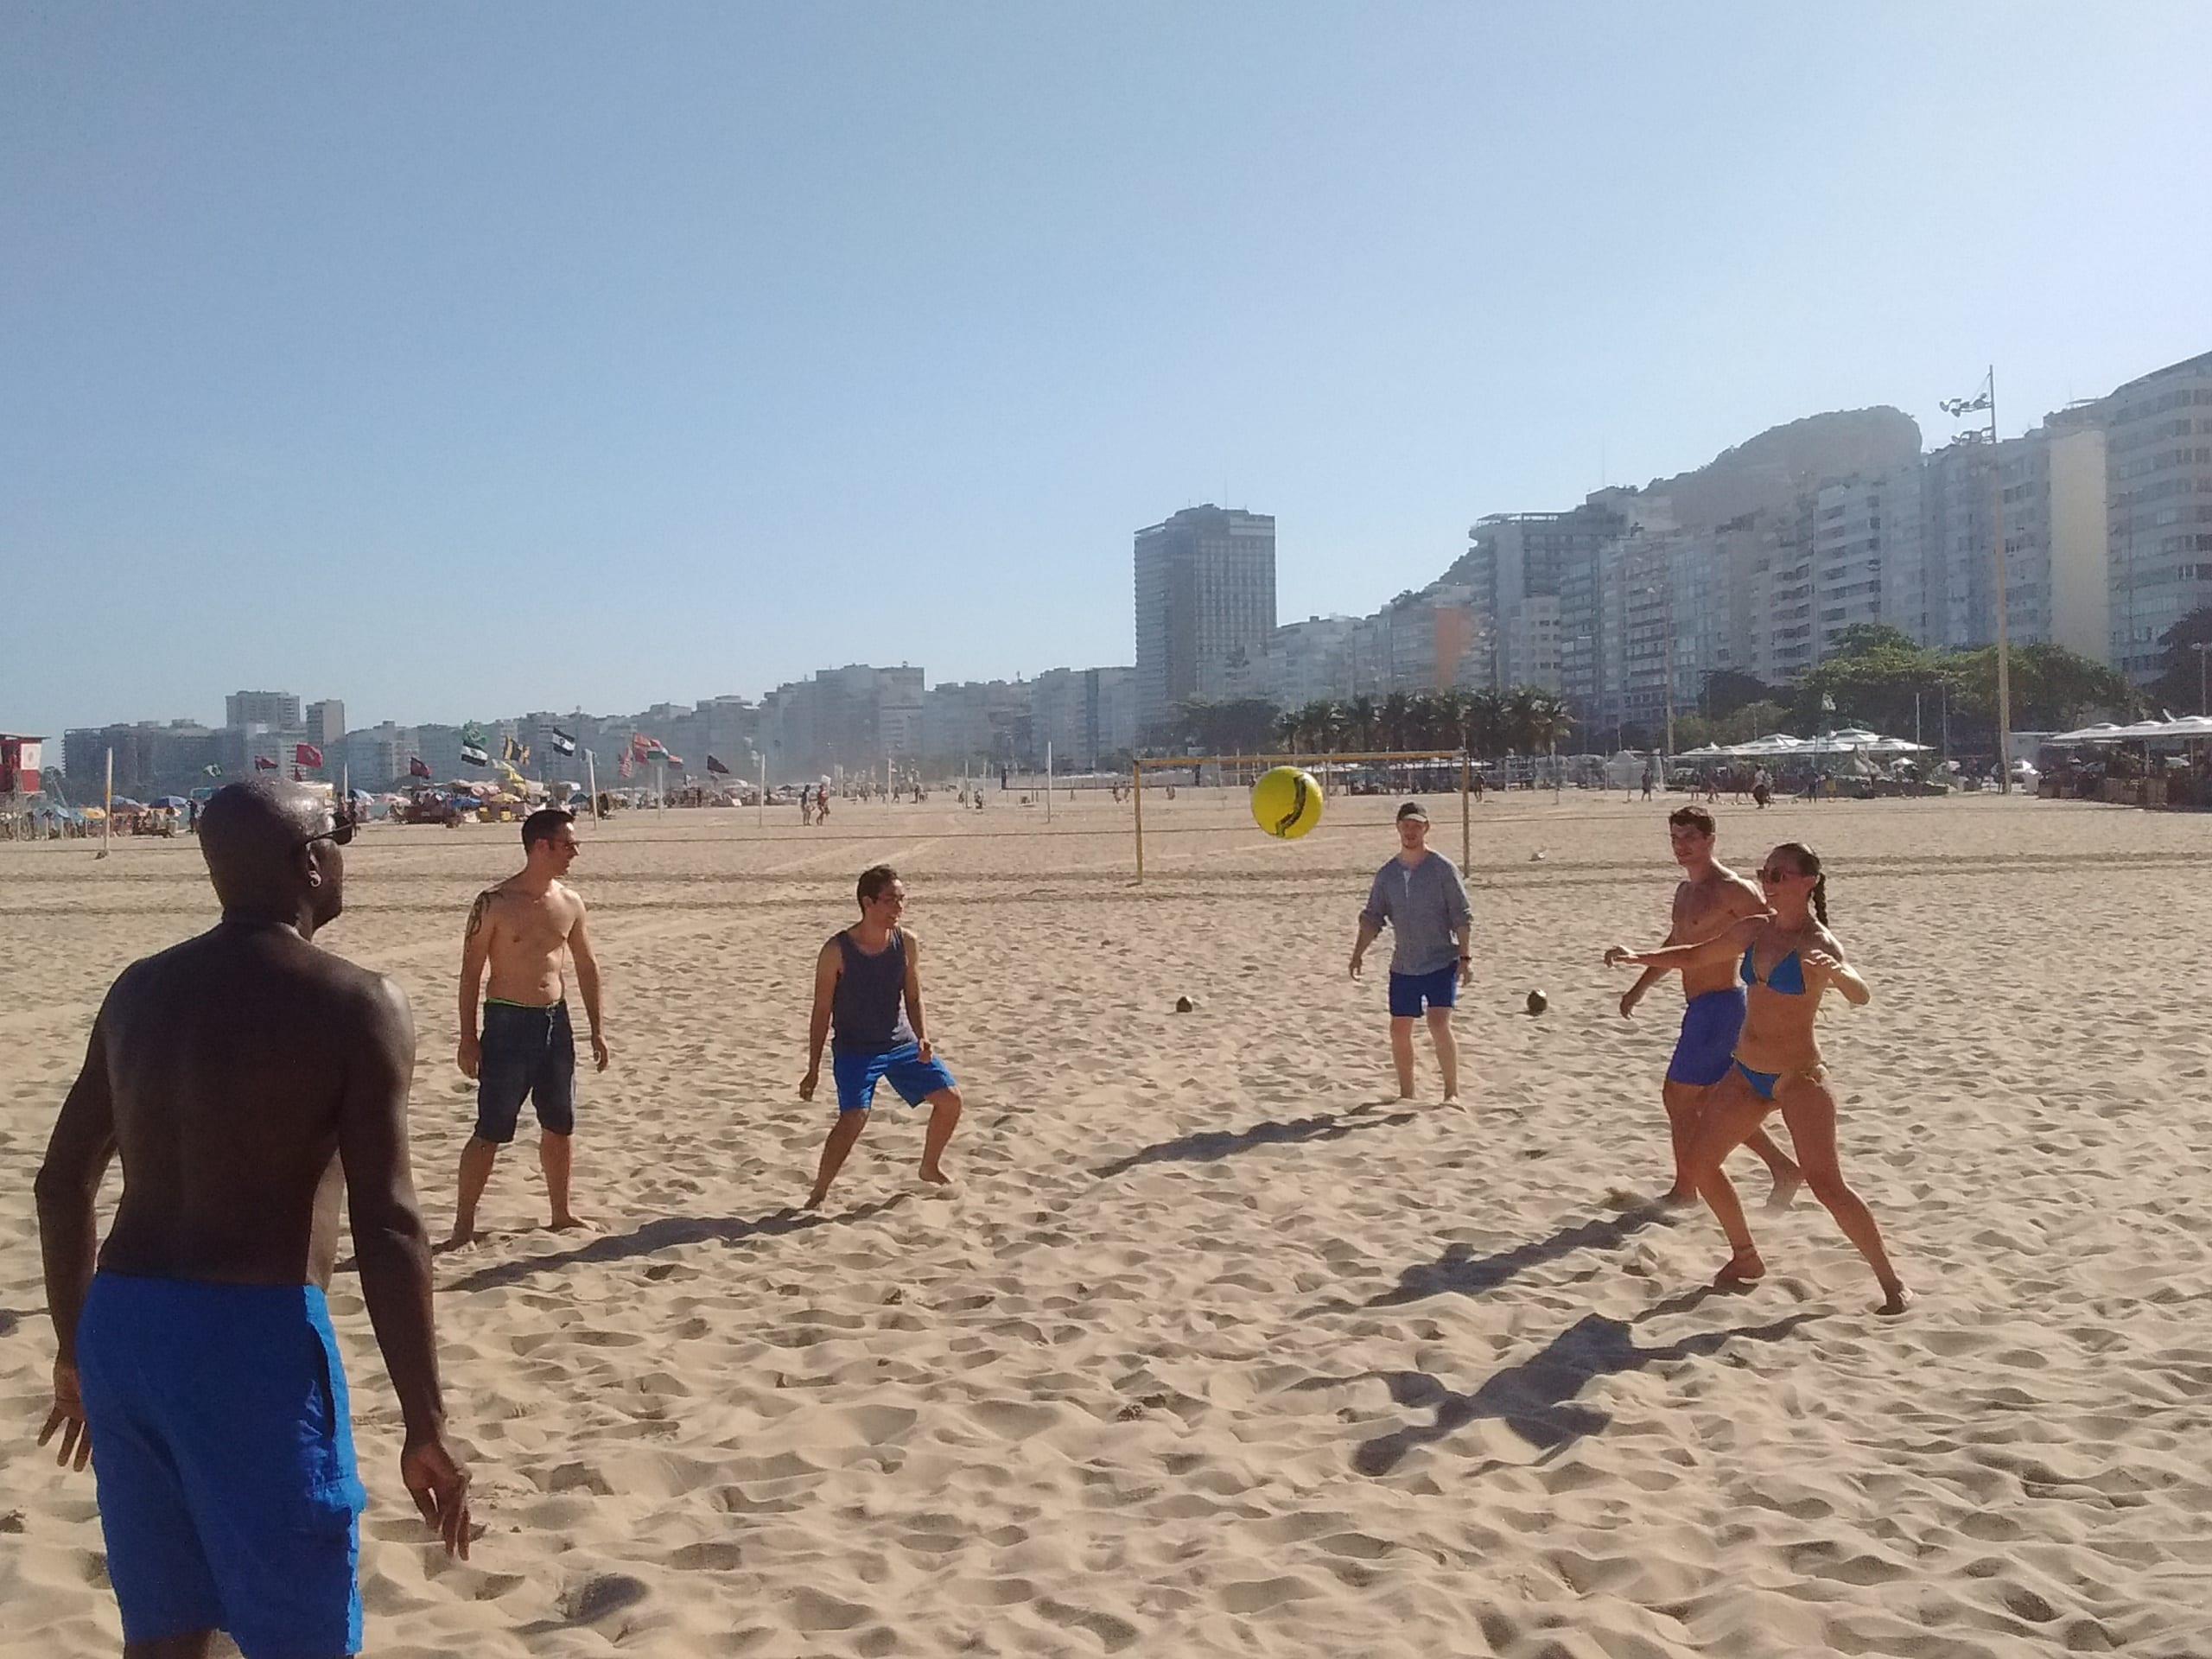 We had a fun time among friends playing beach soccer right next to our beloved school.